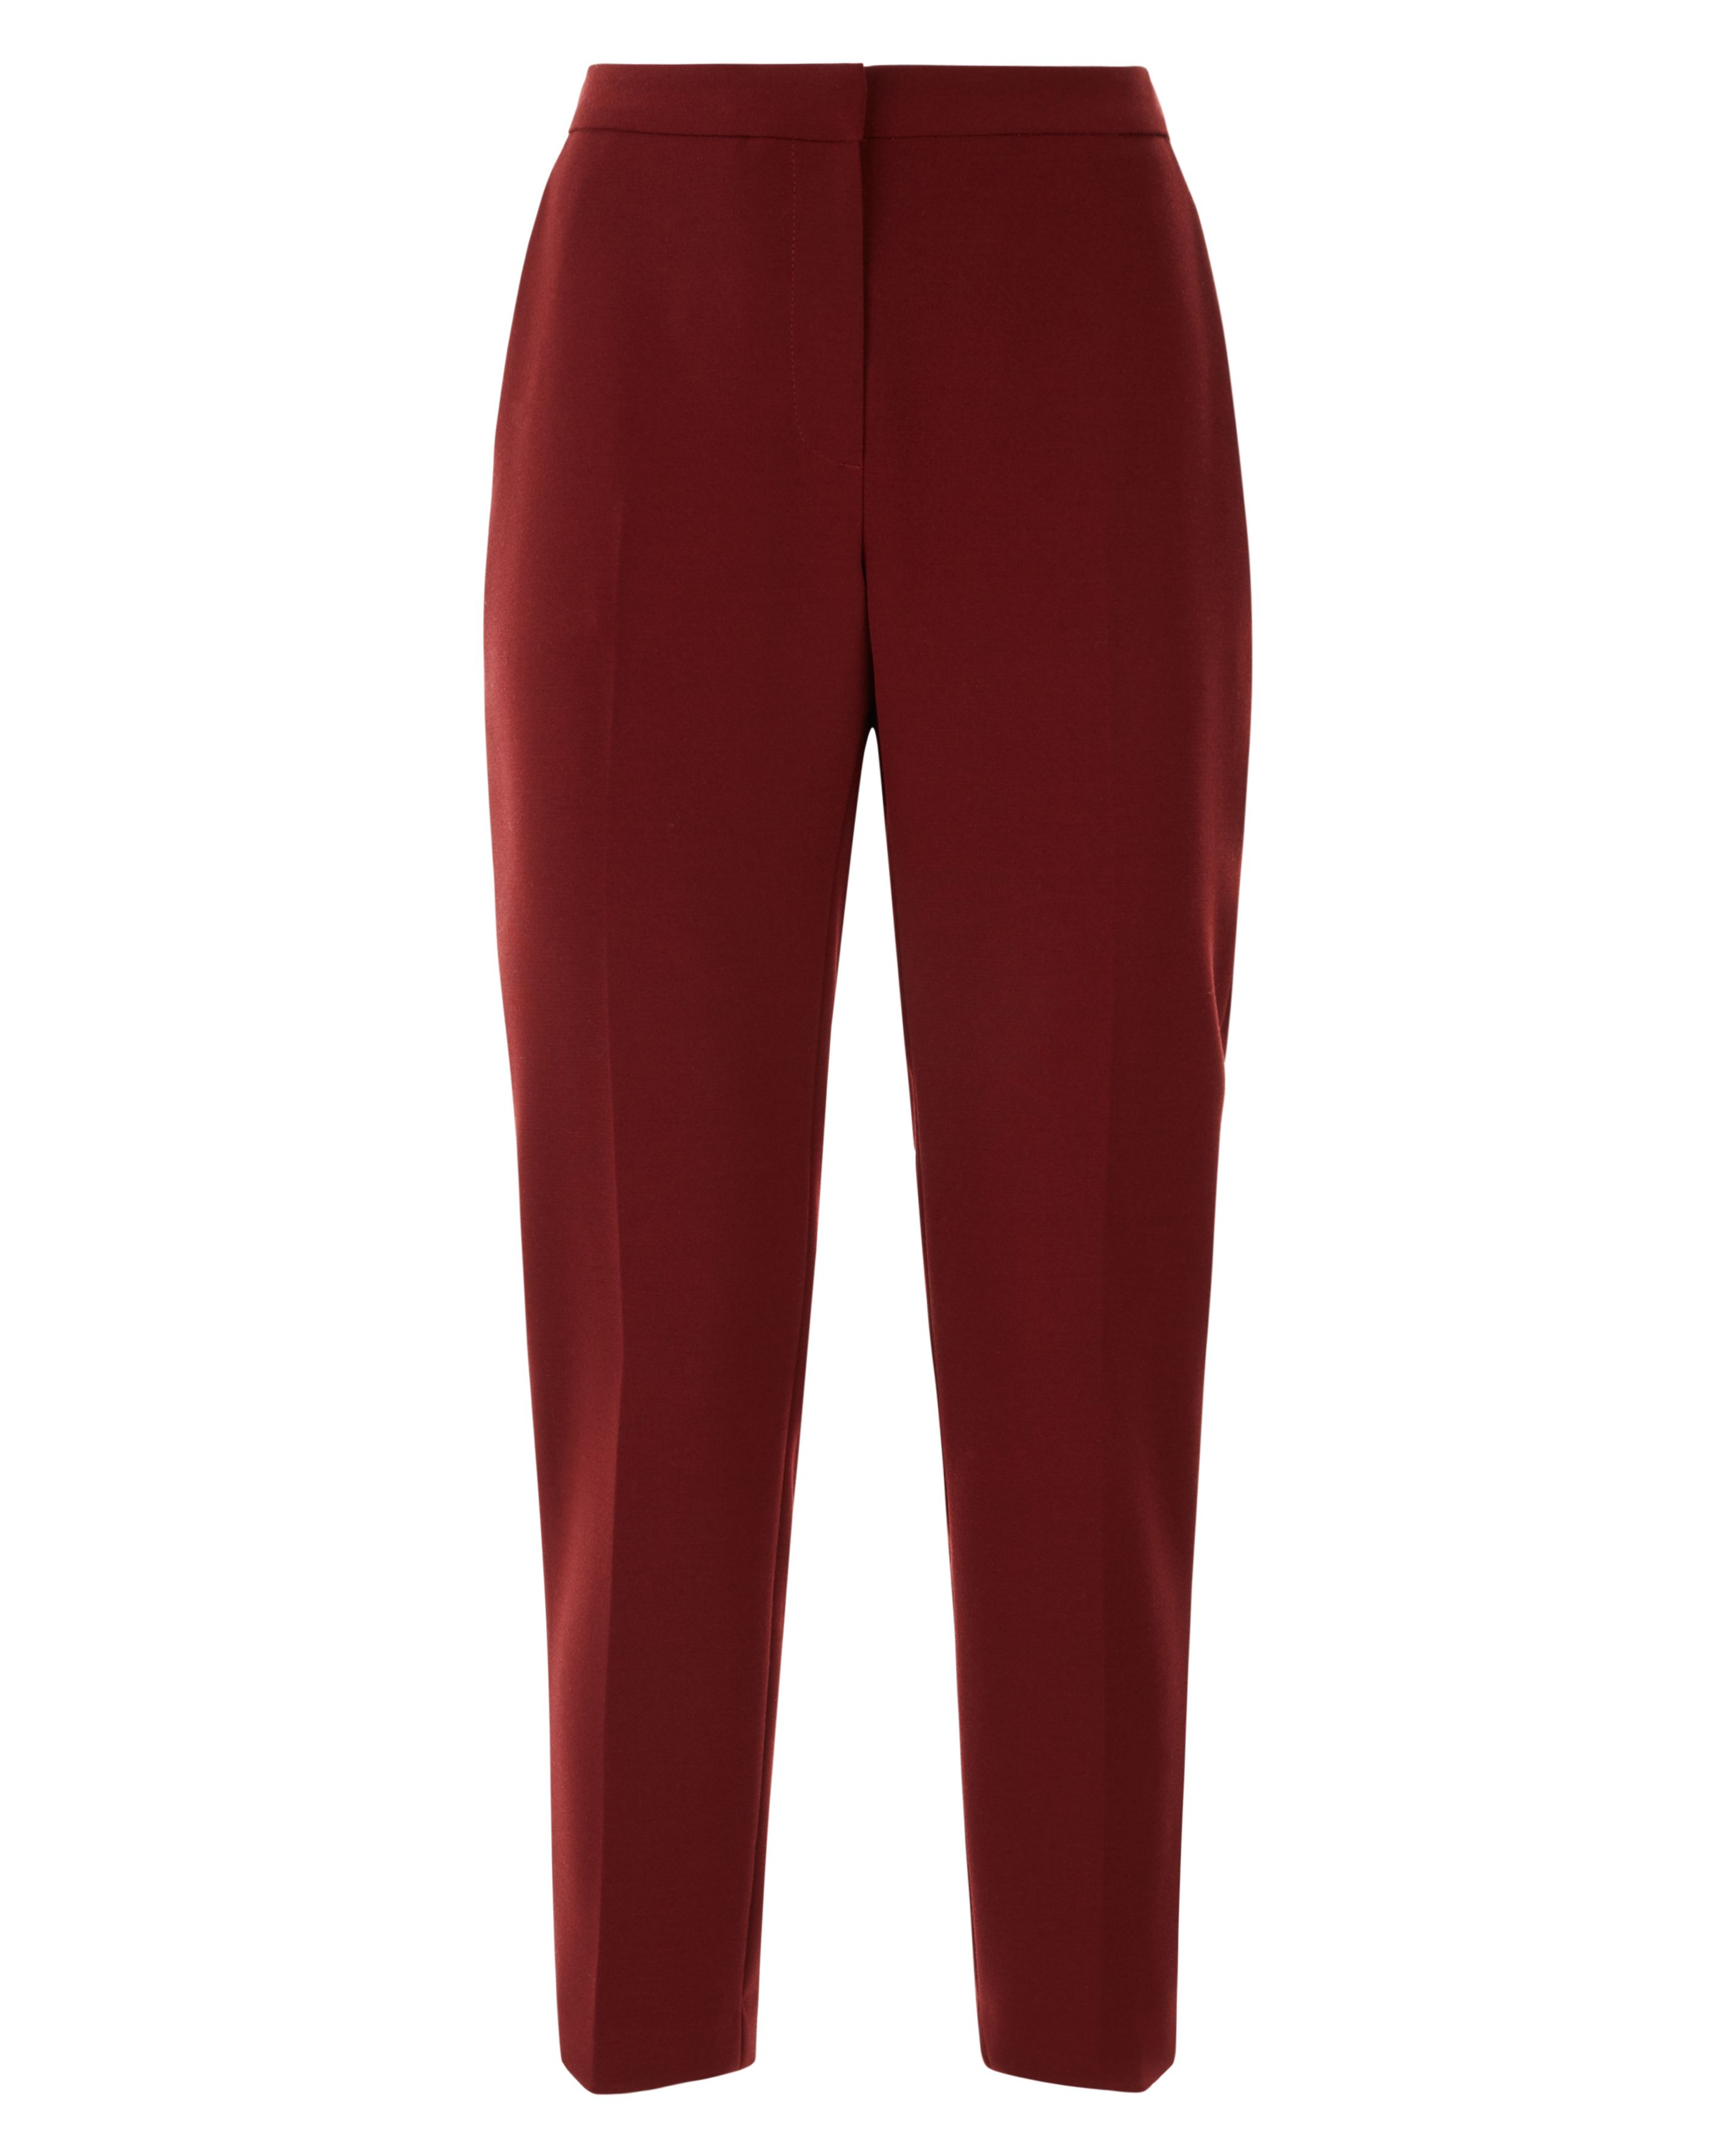 Jaeger Cigarette Trousers With Buttons, Red